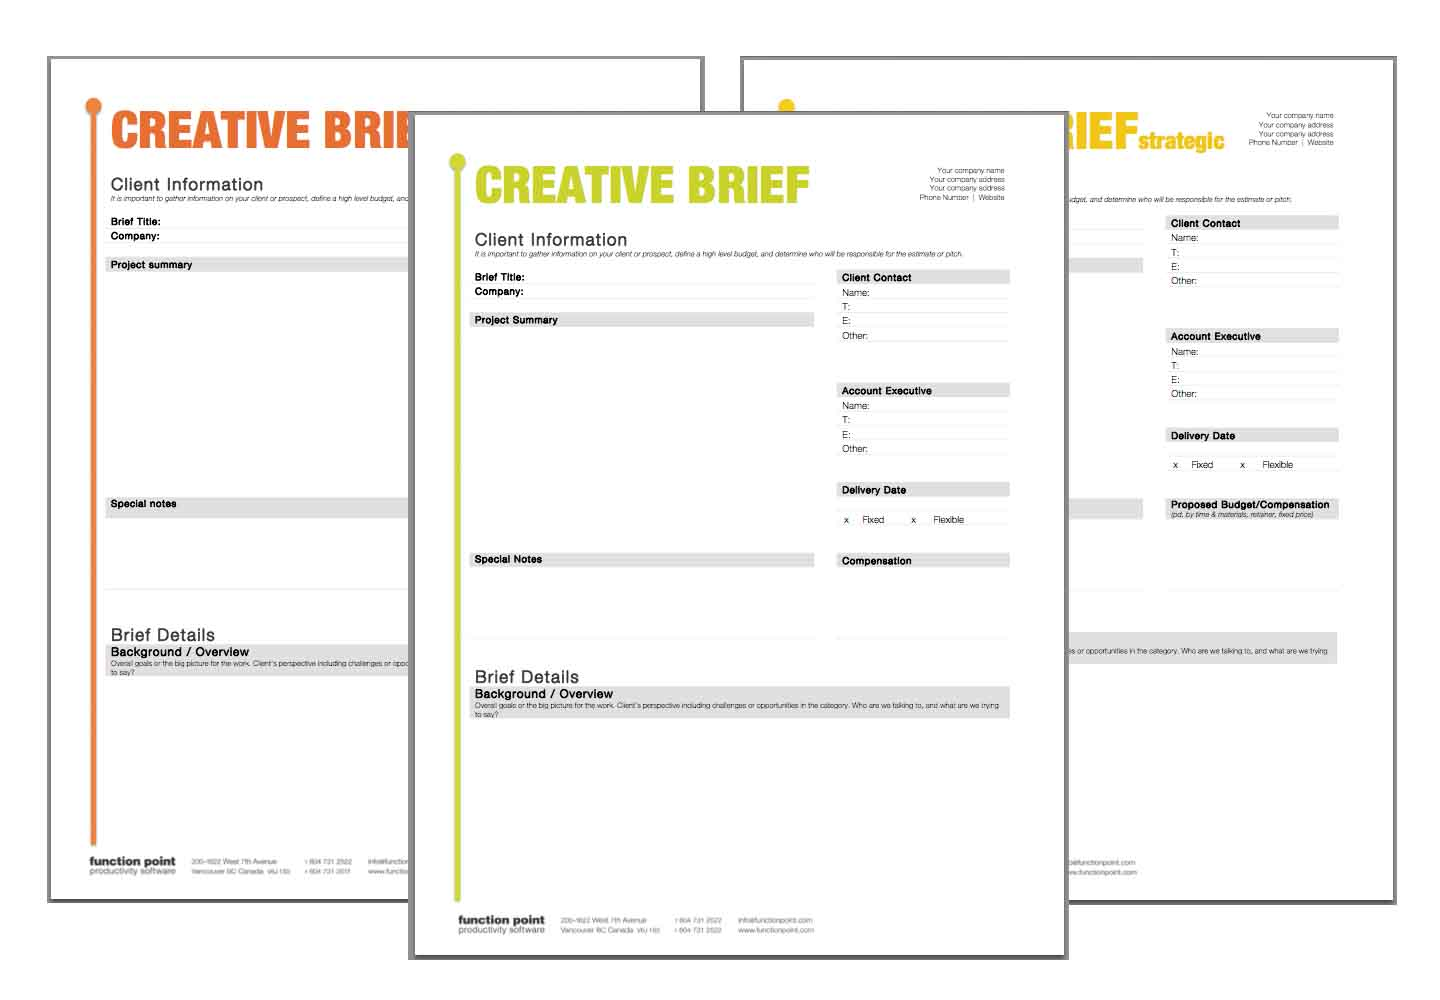 Creative Agency Project Management Template Social Media Tracking